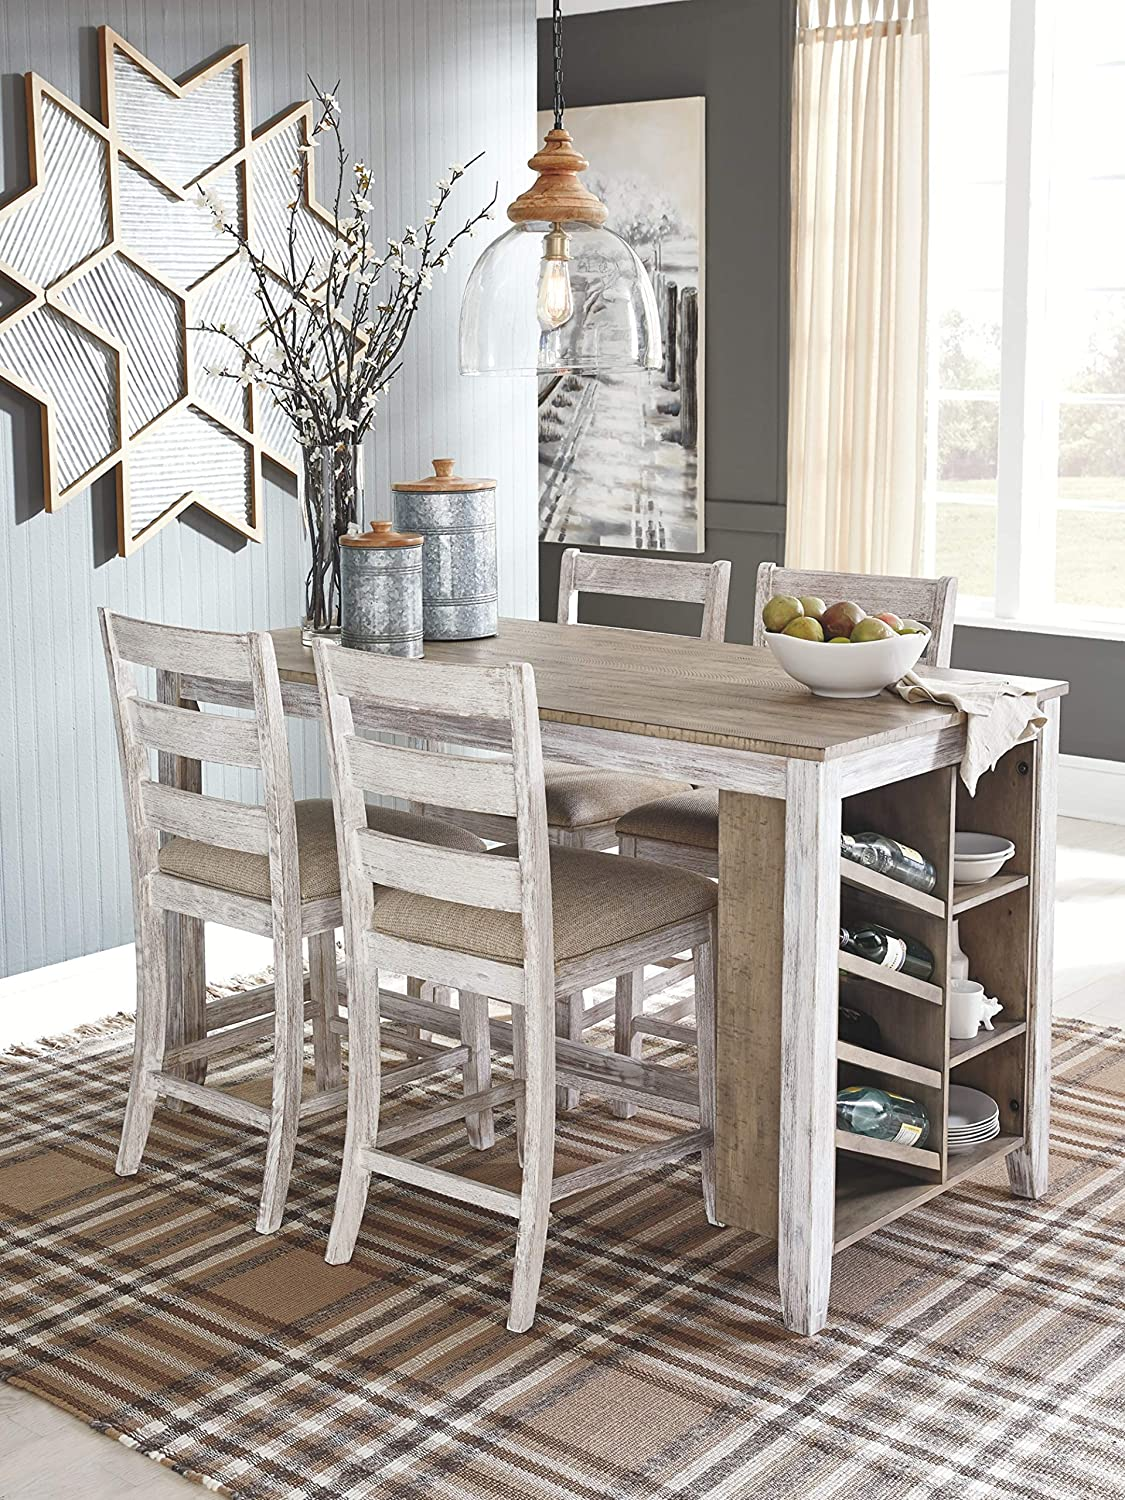 Signature Design by Ashley Bolanburg Casual Rectangular Dining Room Counter Table Two-Tone